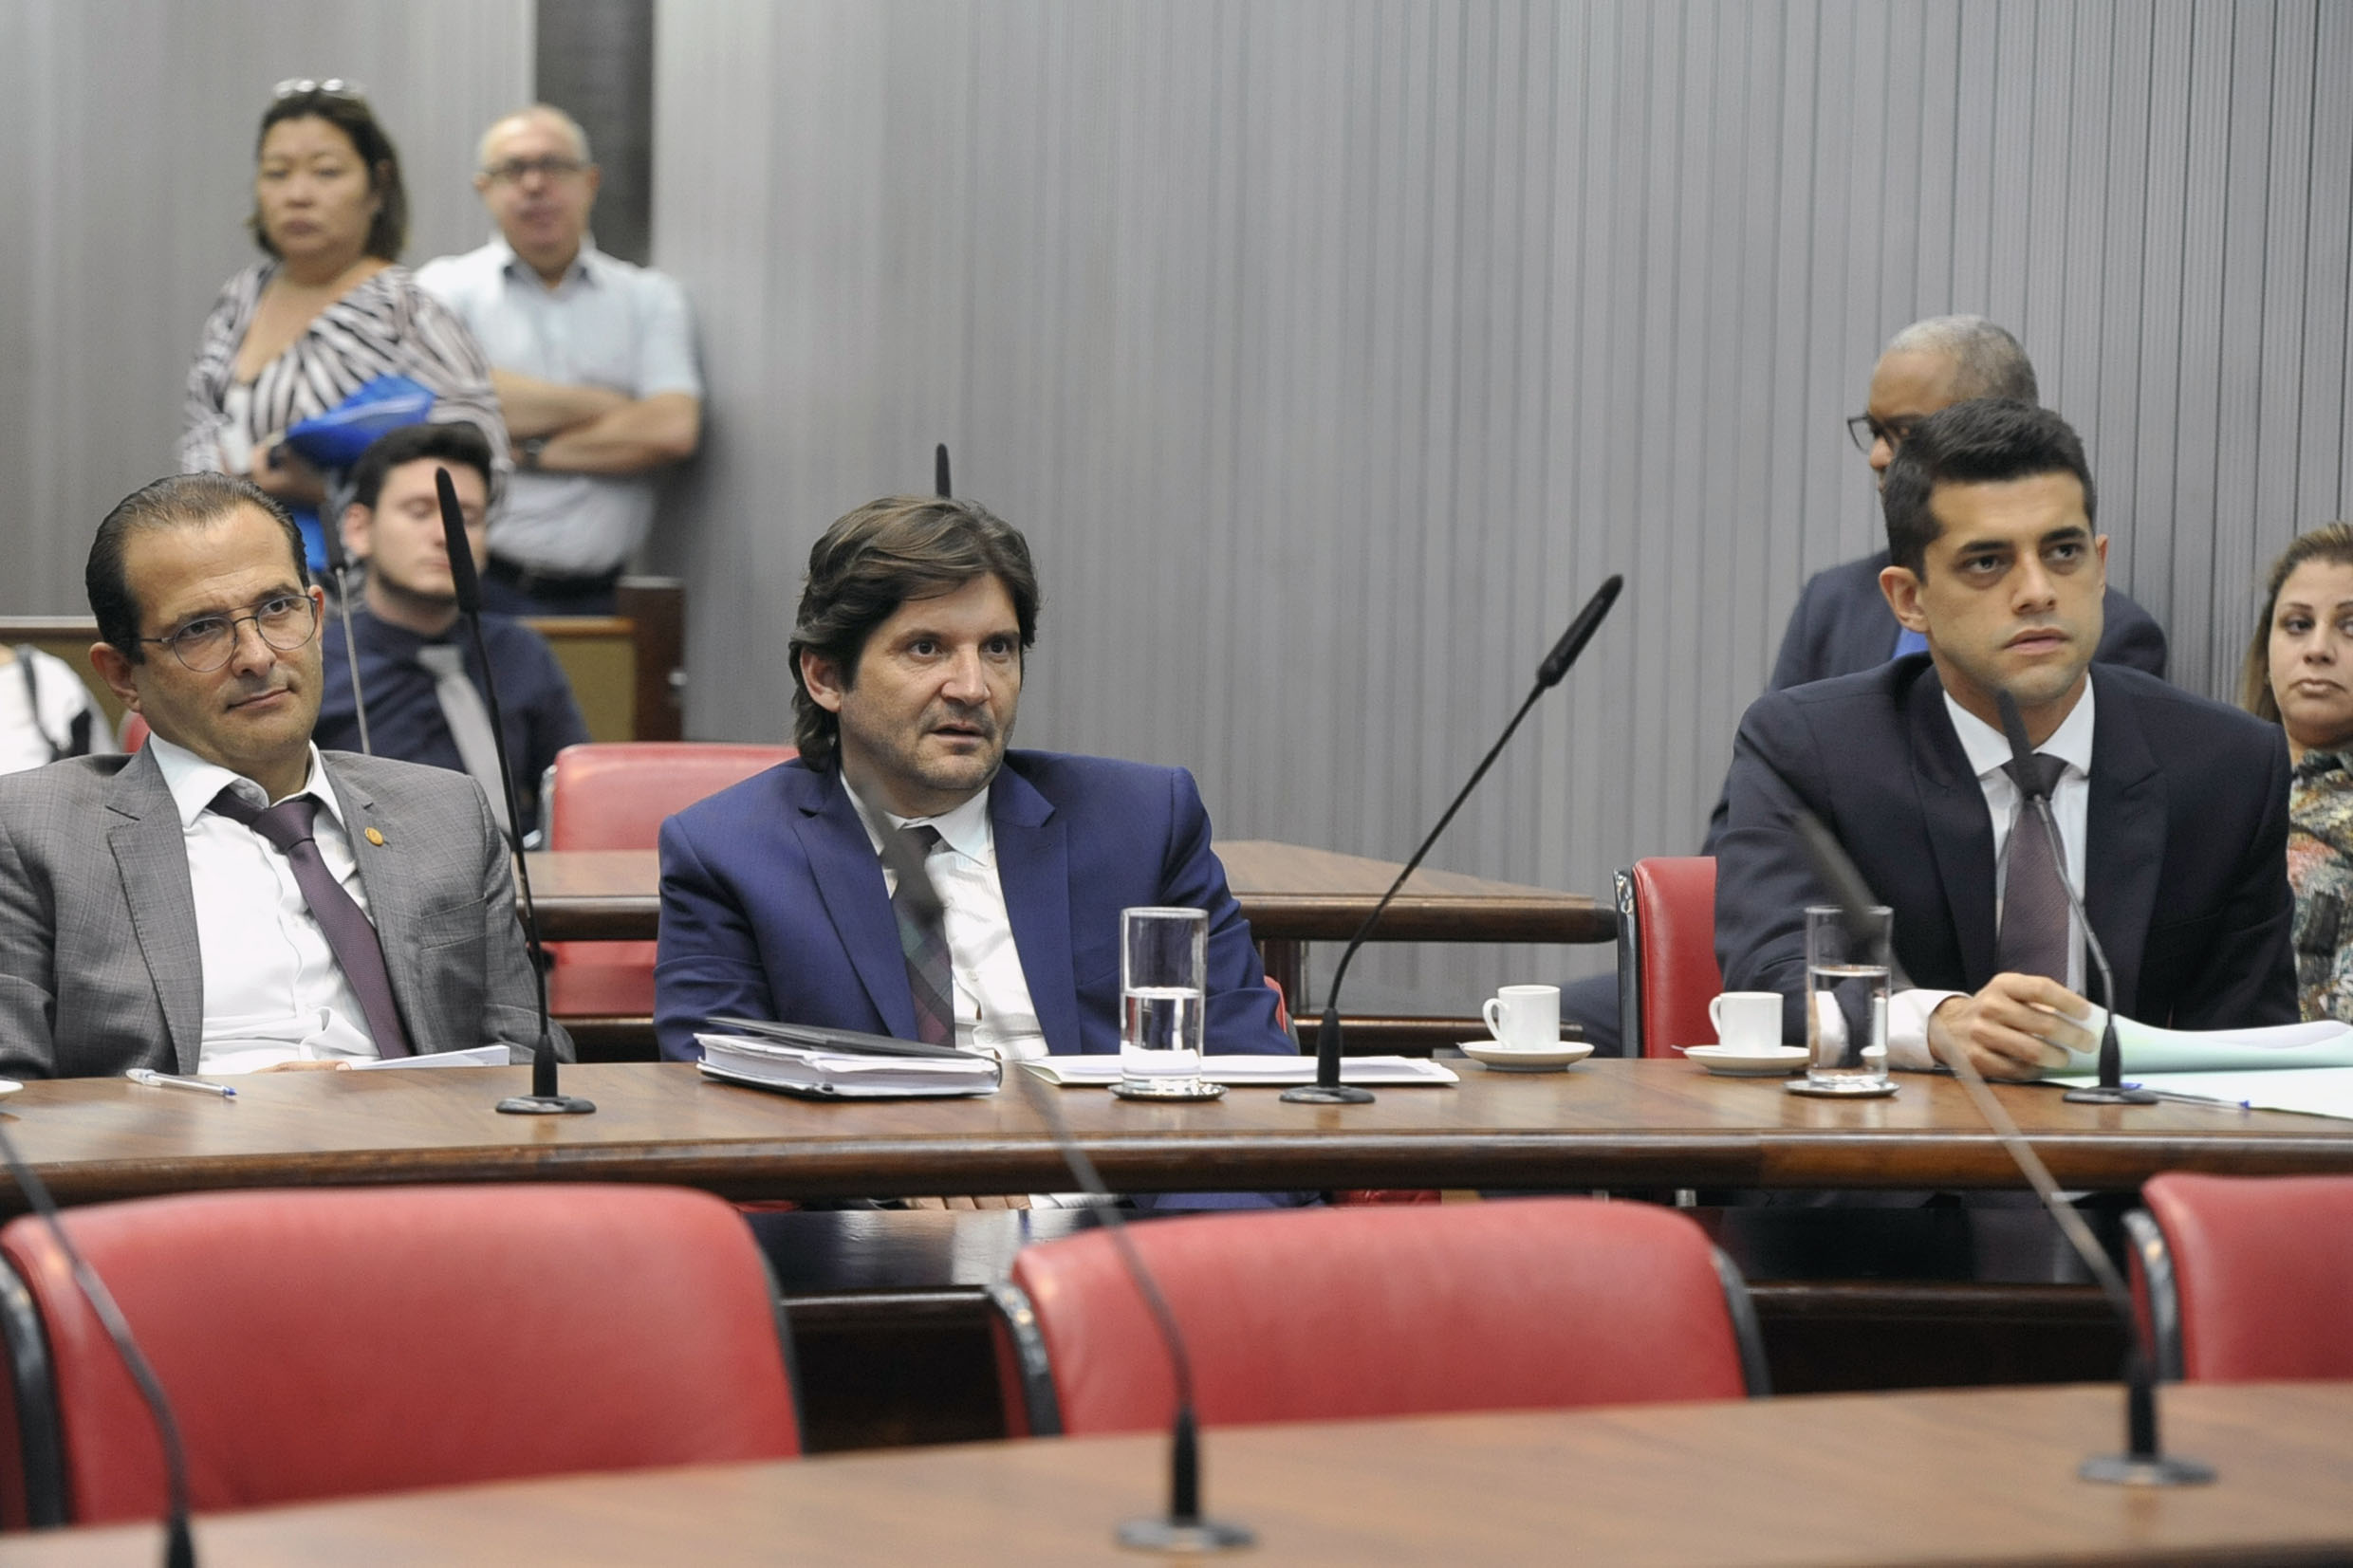 Parlamentares na comissão<a style='float:right' href='https://www3.al.sp.gov.br/repositorio/noticia/N-04-2019/fg233433.jpg' target=_blank><img src='/_img/material-file-download-white.png' width='14px' alt='Clique para baixar a imagem'></a>